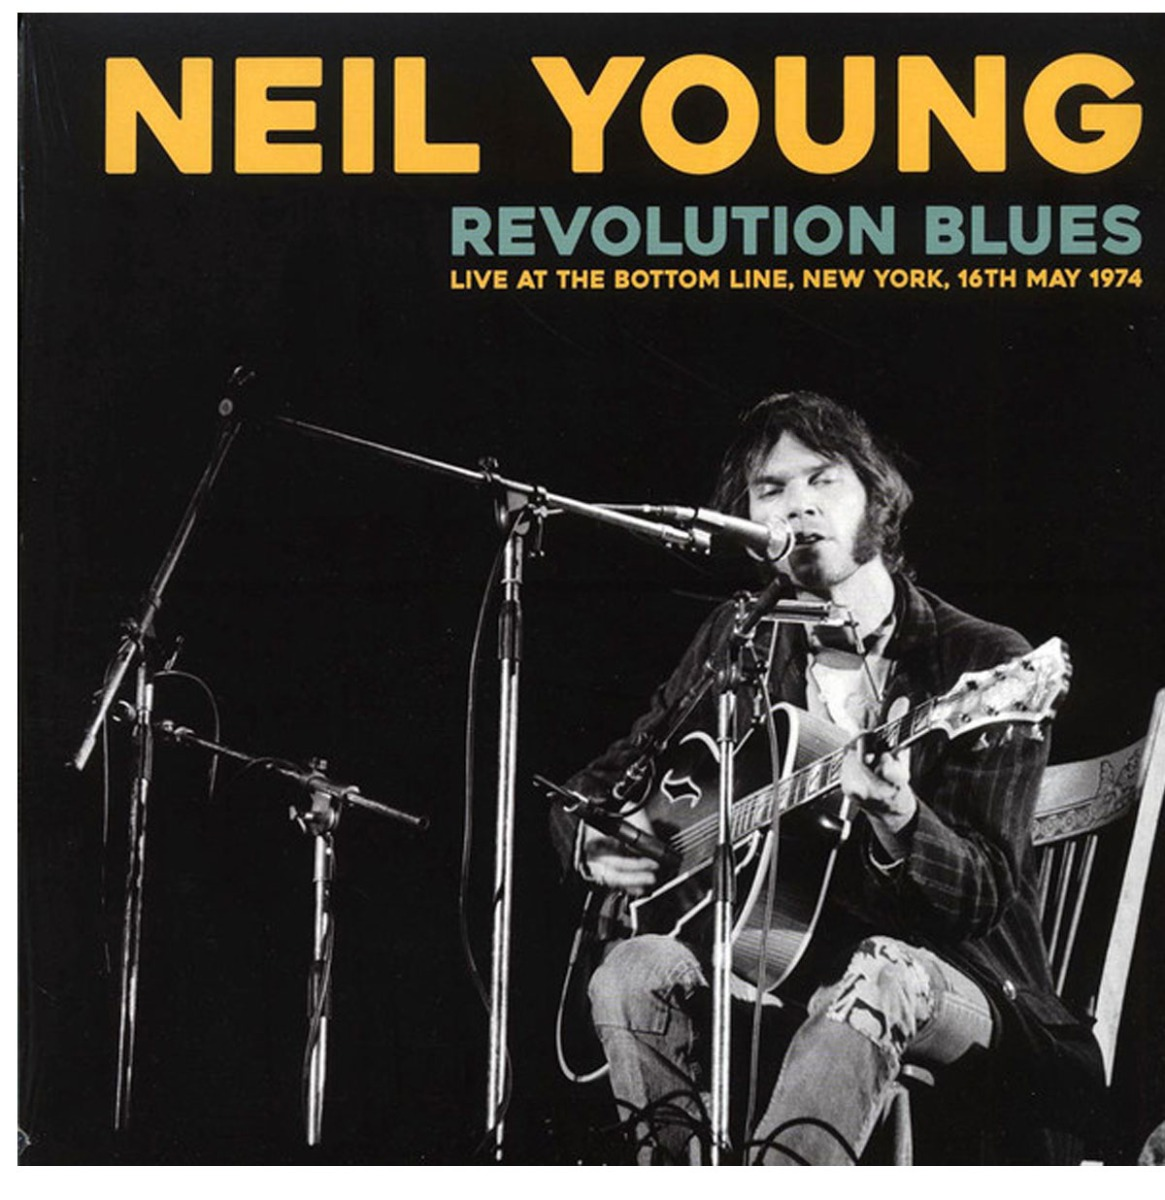 Neil Young: Revolution Blues Live At The Bottom Line, New York, 16 th May 1974